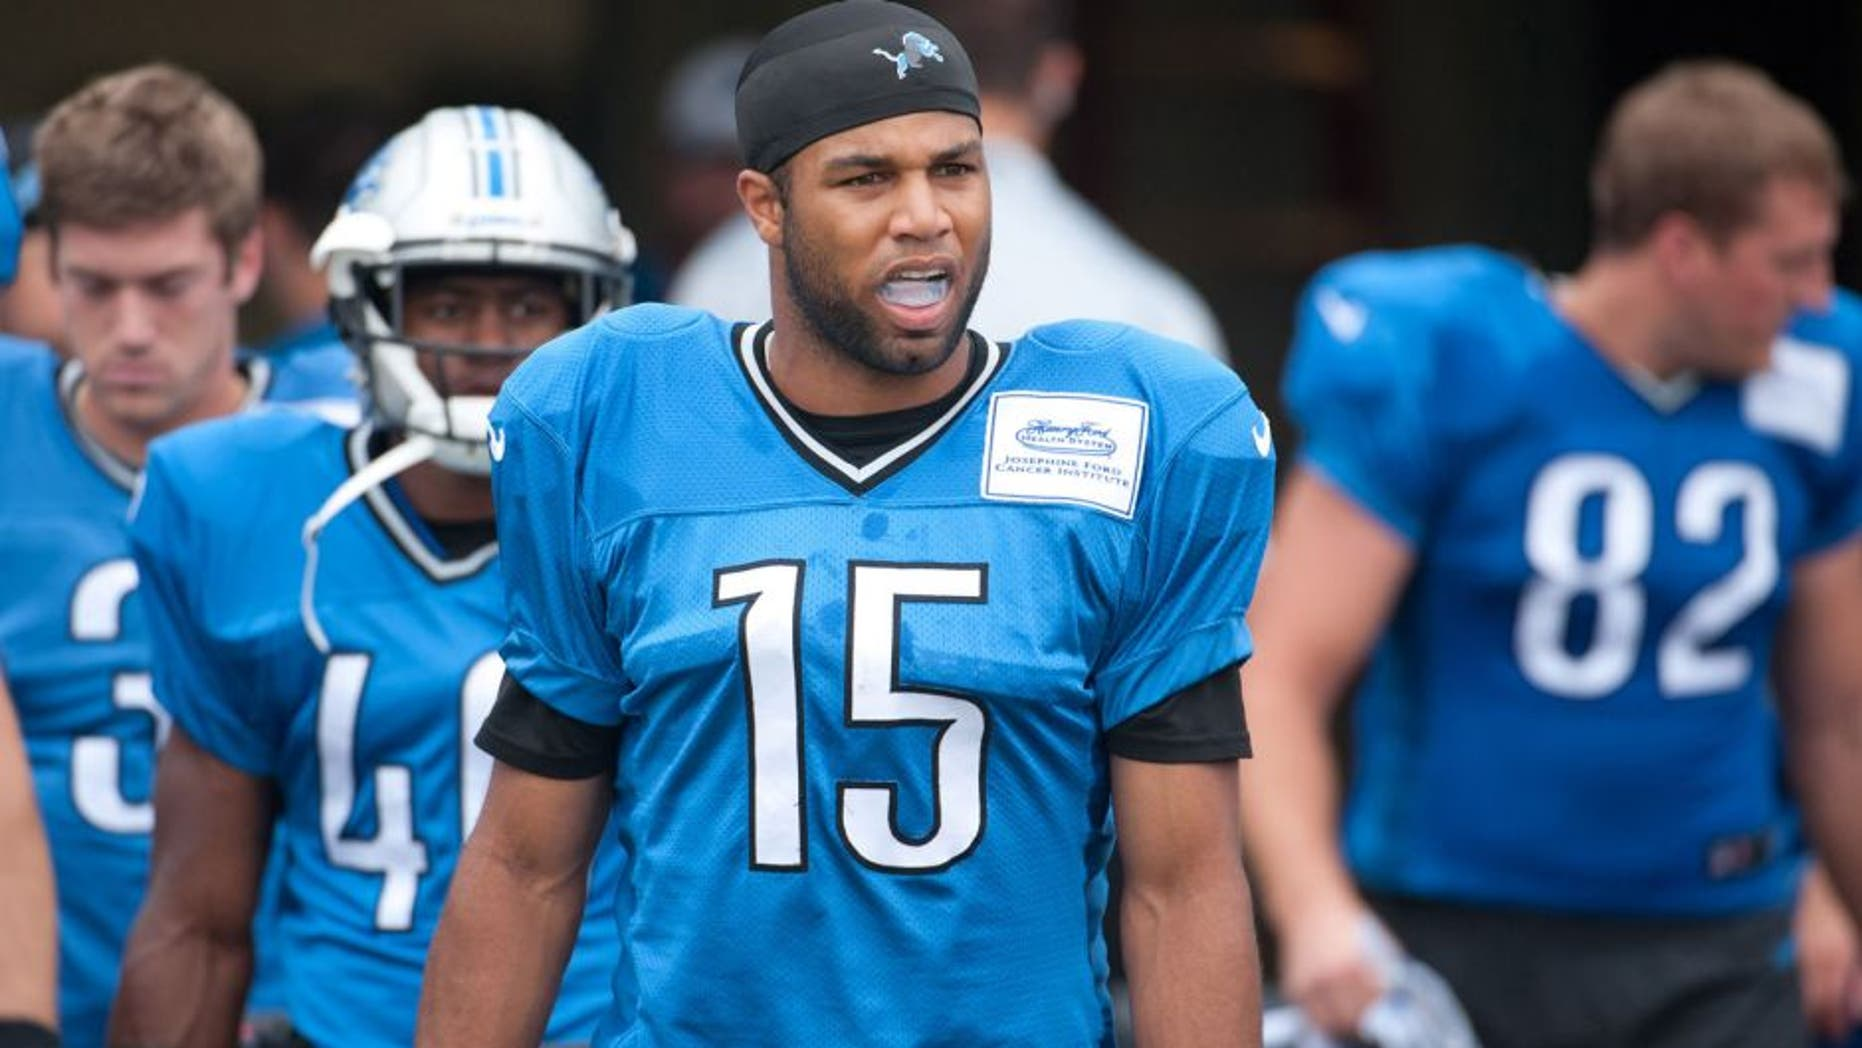 Aug 2, 2014; Detroit, MI, USA; Detroit Lions wide receiver Golden Tate (15) takes to the field during training camp at the Lions training facility. Mandatory Credit: Tim Fuller-USA TODAY Sports